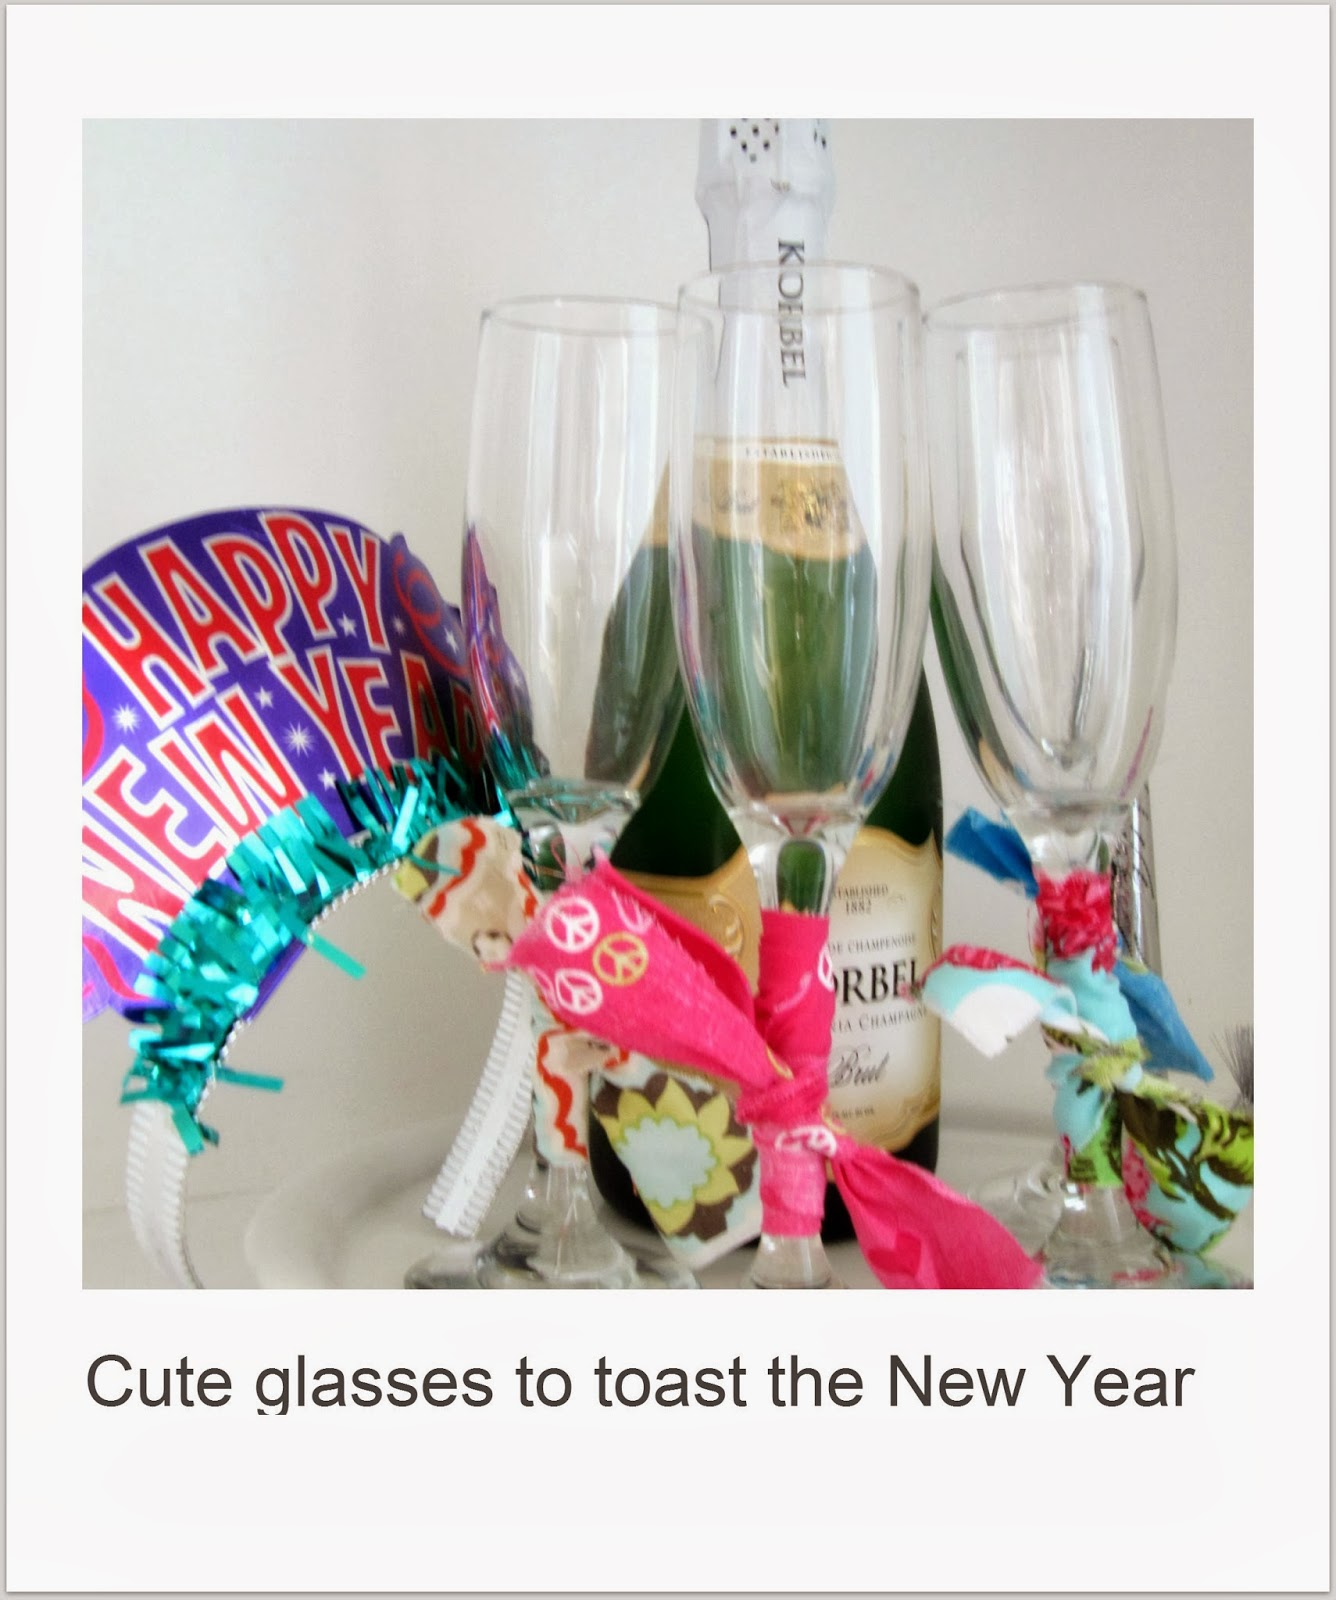 http://thewickerhouse.blogspot.com/2012/12/cute-glasses-to-toast-new-year.html